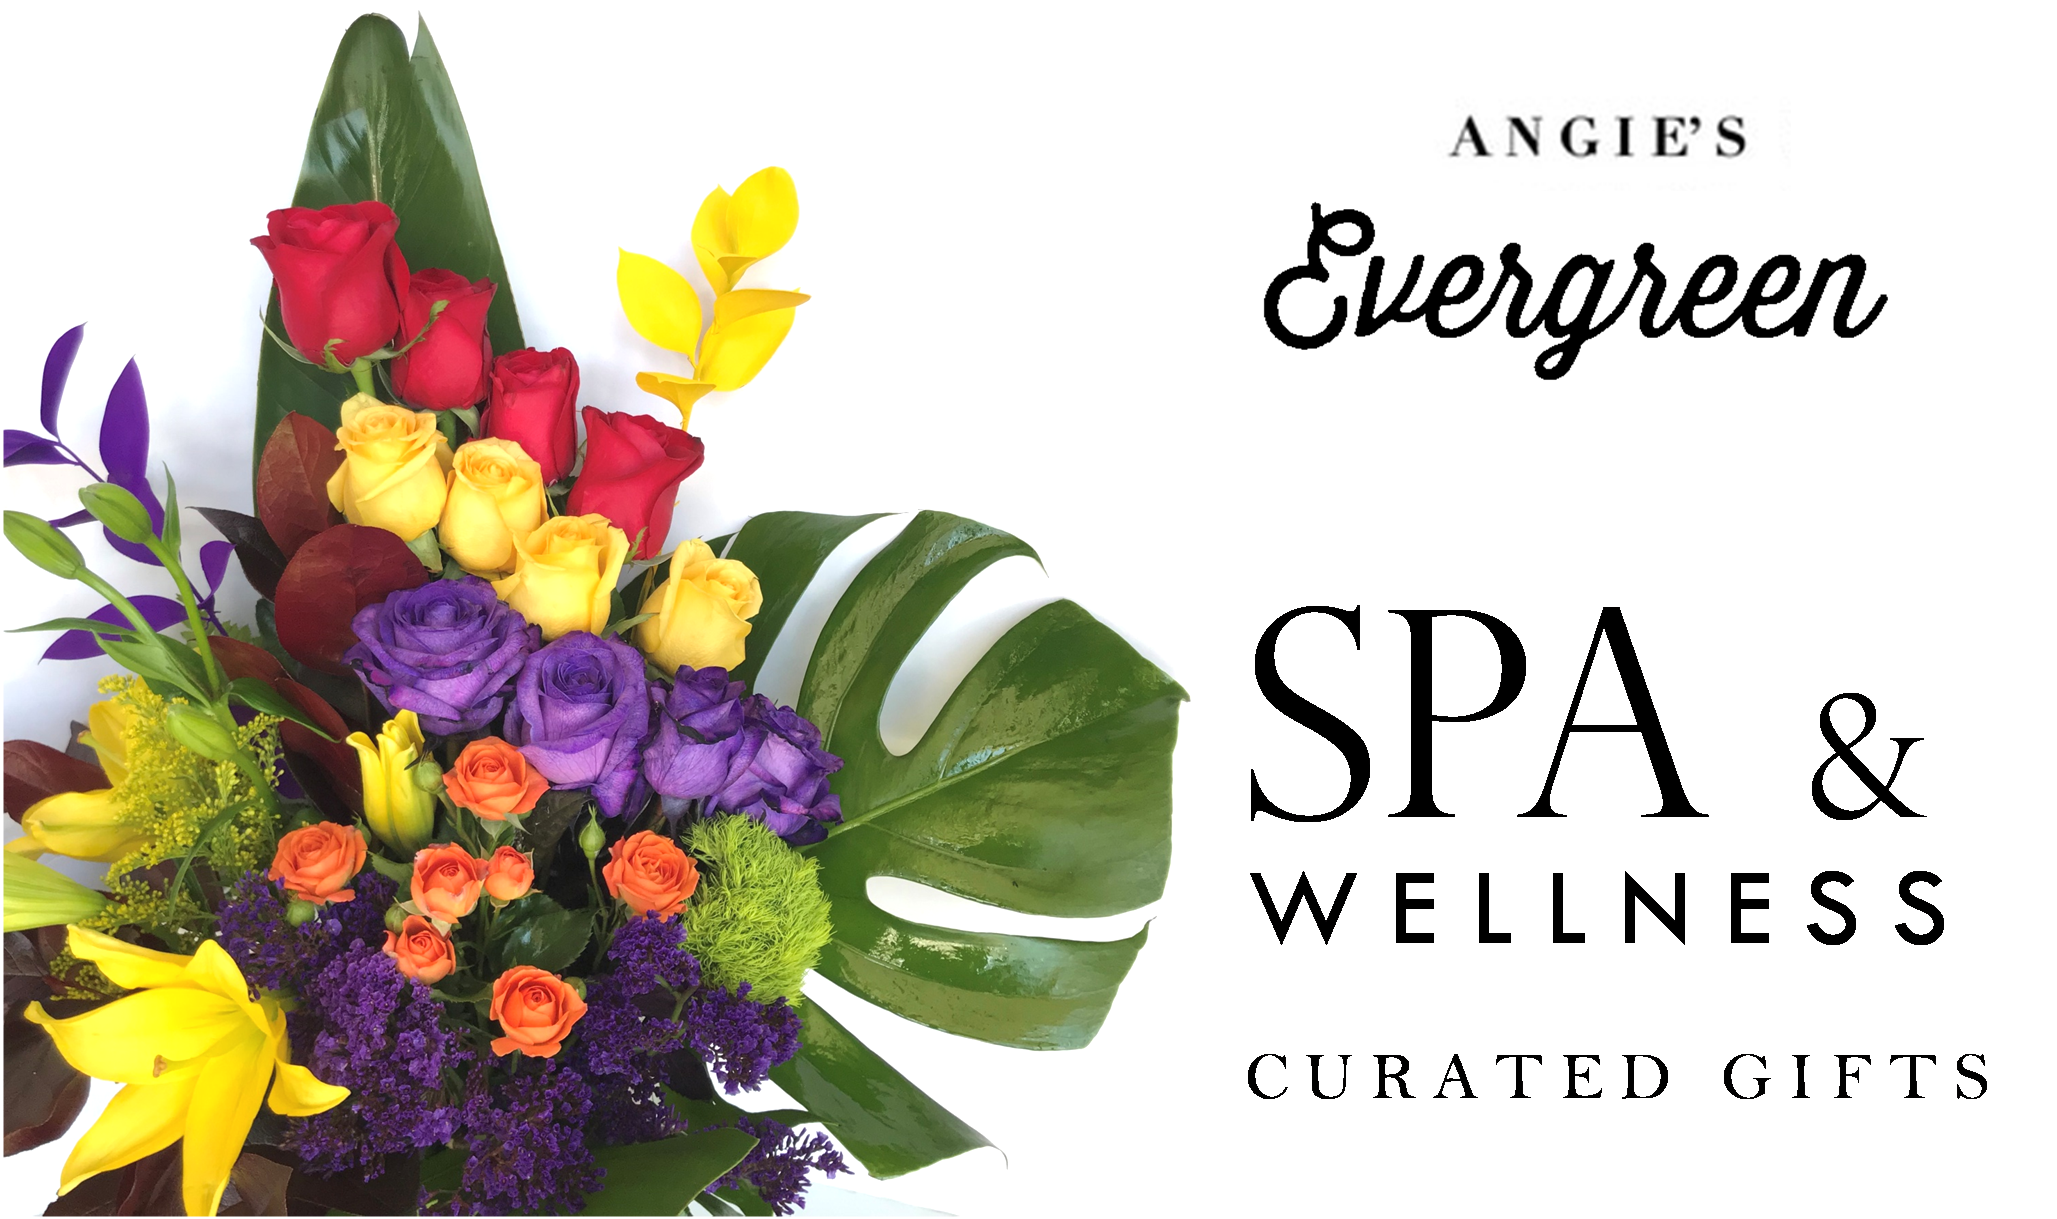 1-spa-and-wellness-gifts-and-spa-bloom-box-el-paso-tx-angies-floral-designs-el-paso-texas-el-paso-79912-brand-partnerships-brands-el-paso-florist-angies-flower-shop.png